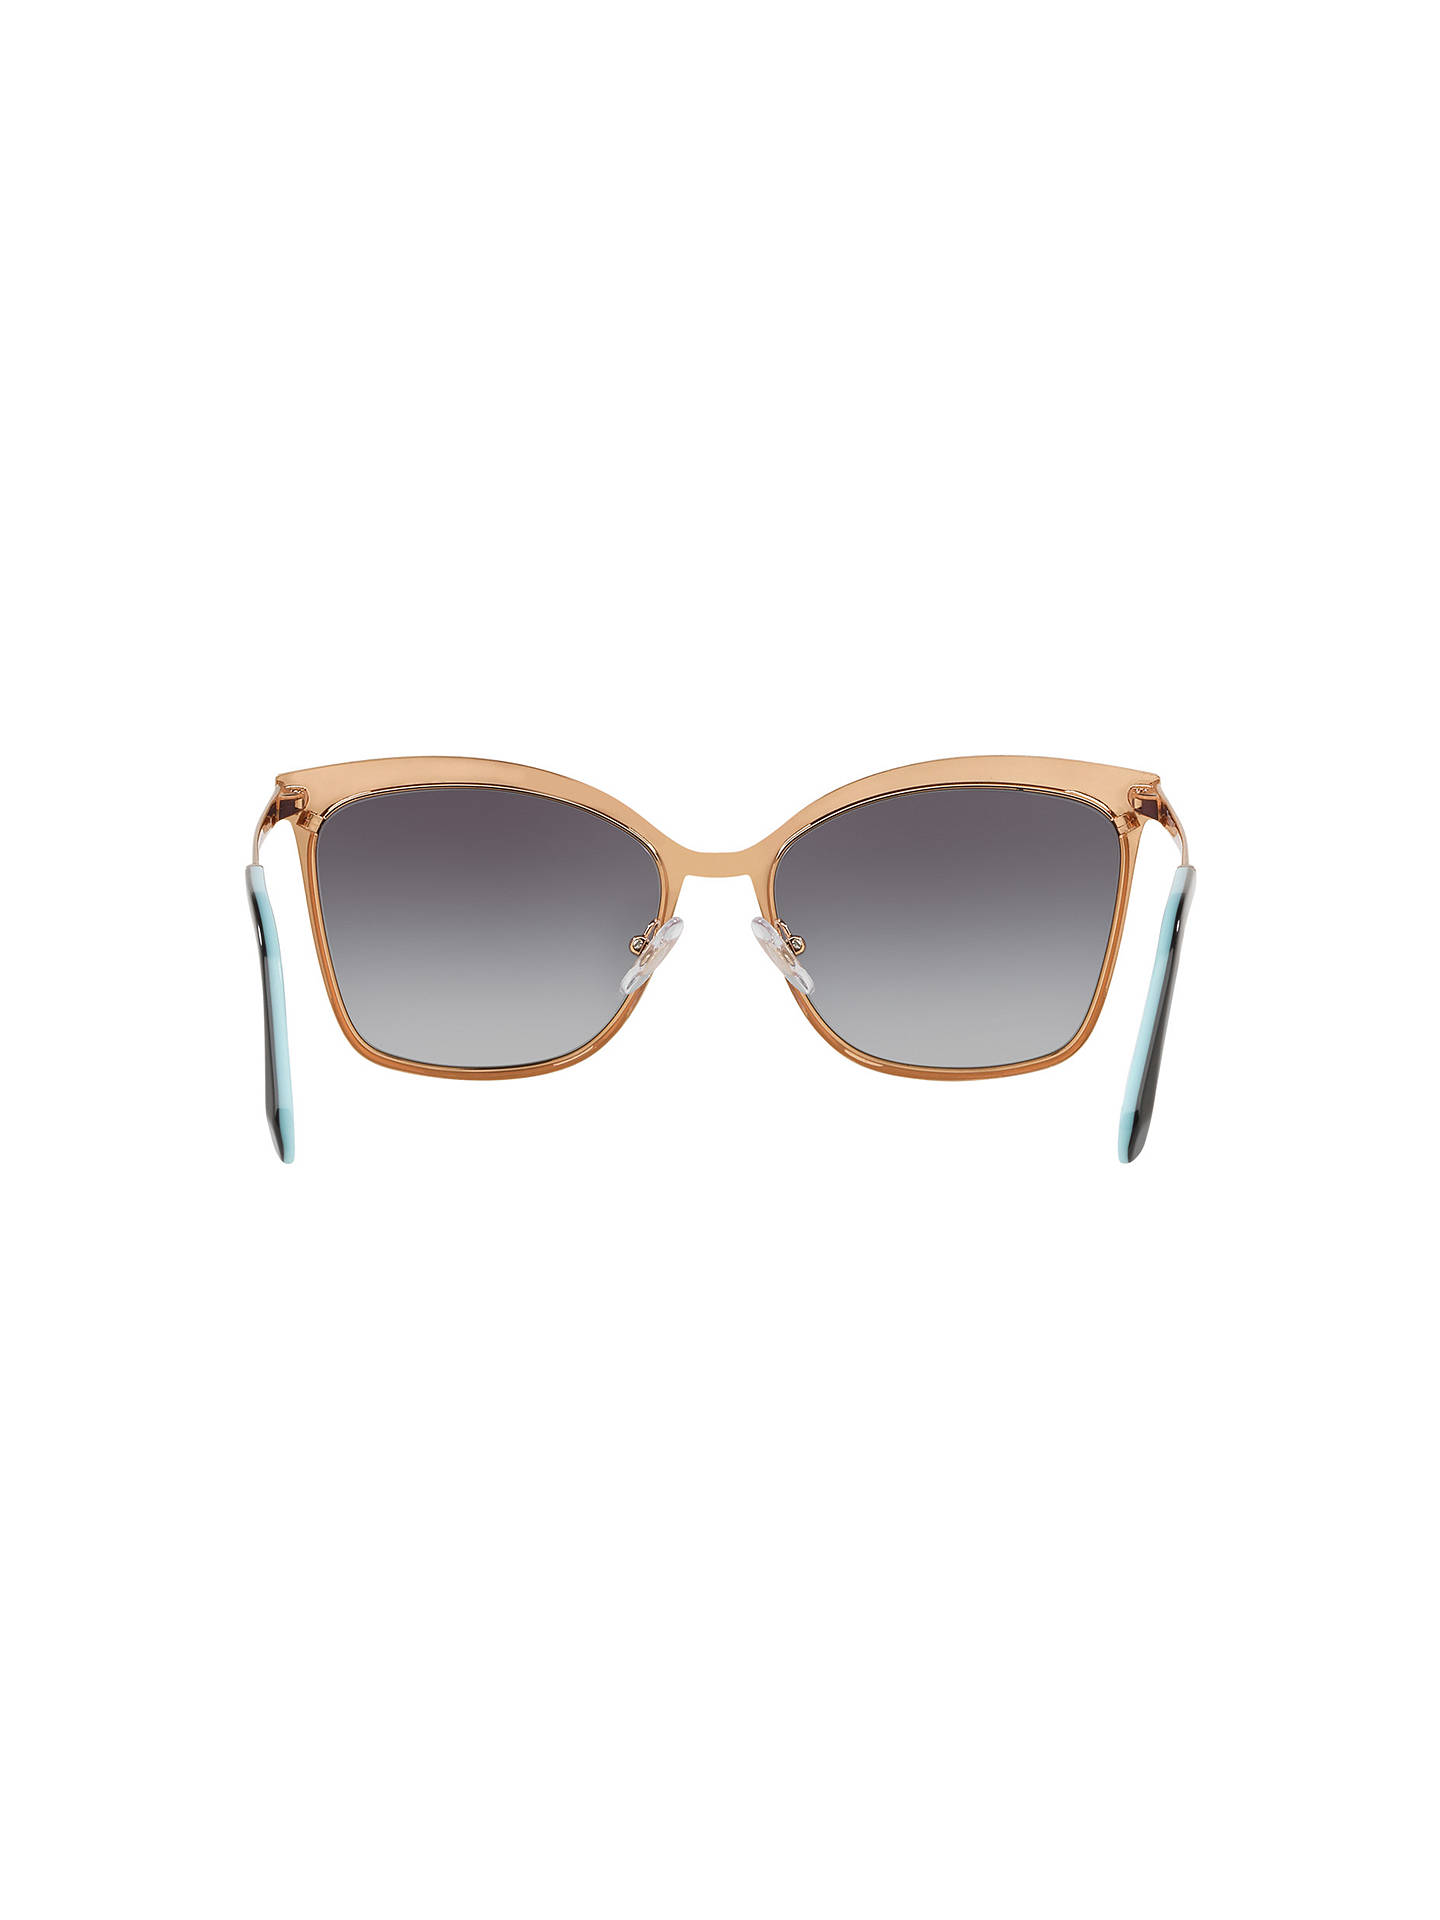 BuyTiffany & Co TF3060 Women's Square Sunglasses, Gold/Grey Gradient Online at johnlewis.com